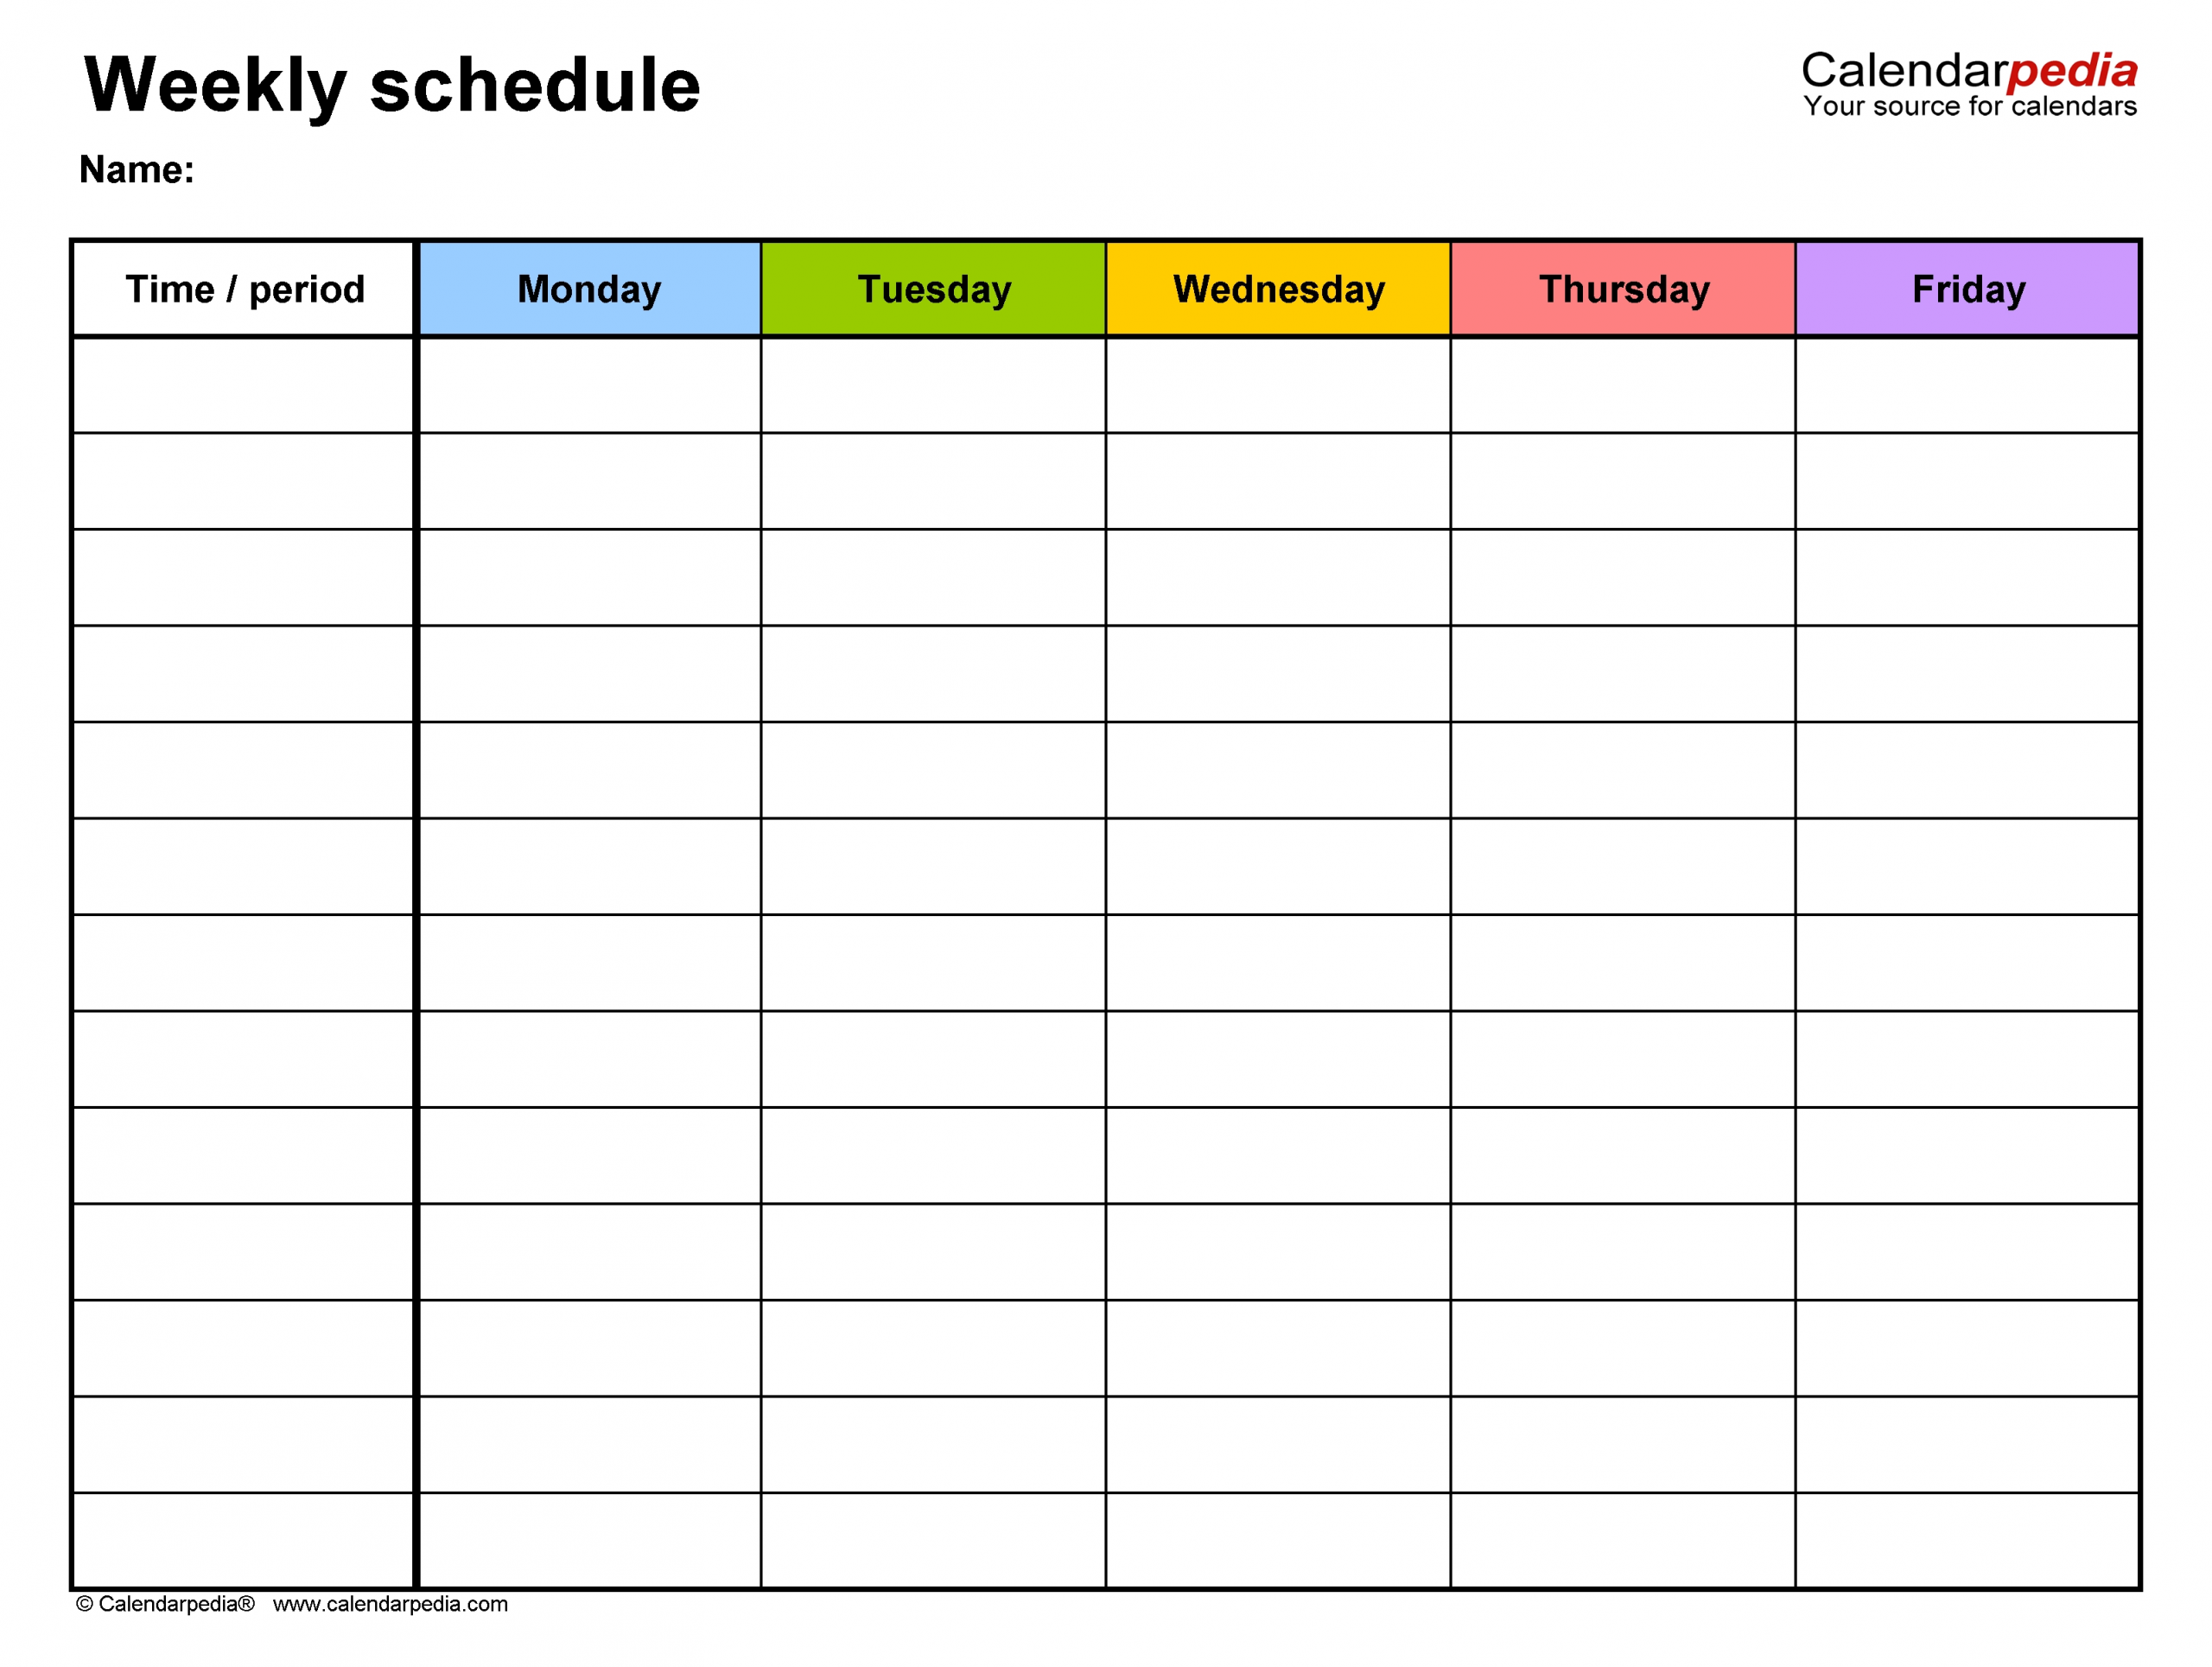 Free Weekly Schedule Templates For Excel - 18 Templates  Excel Calendar Templates Weekly